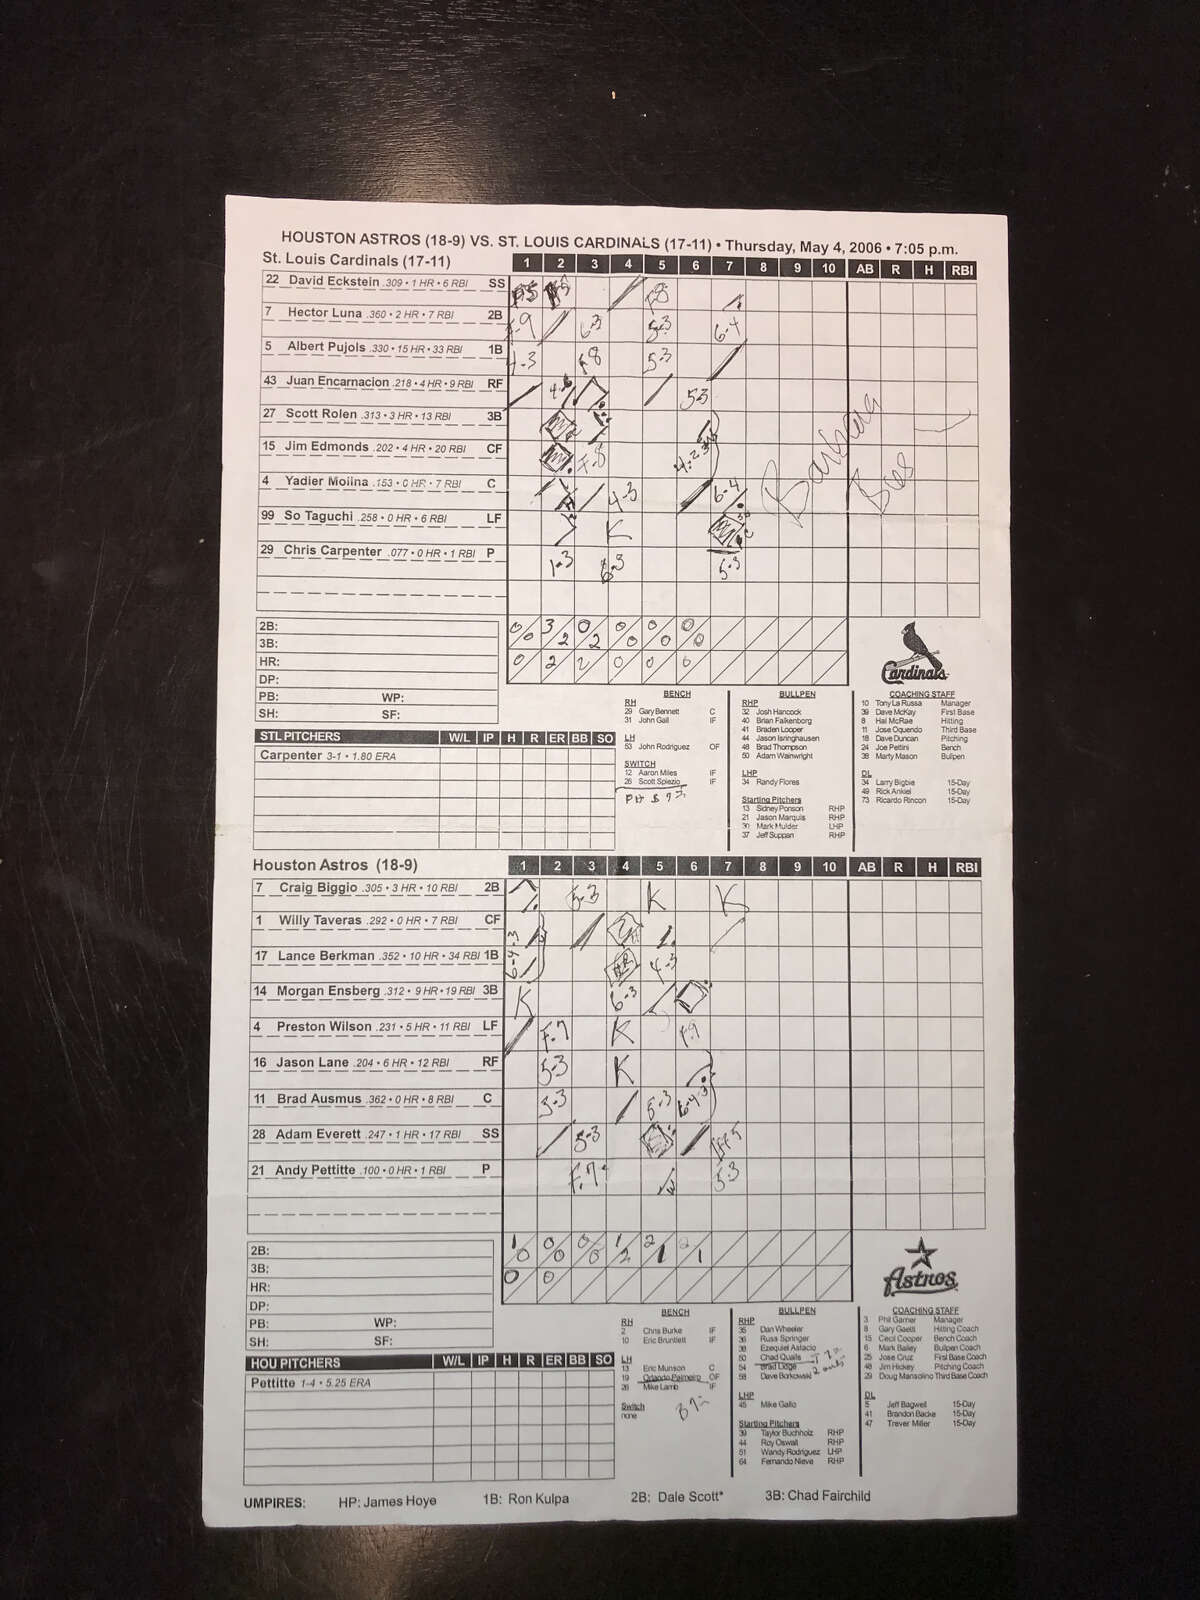 As a big fan of the Astros, Barbara Bush often kept score while at games. This is one of her scoresheets from 2006 that resides in the Astros archives. The Bushes usually left after the seventh inning. She signed this one.